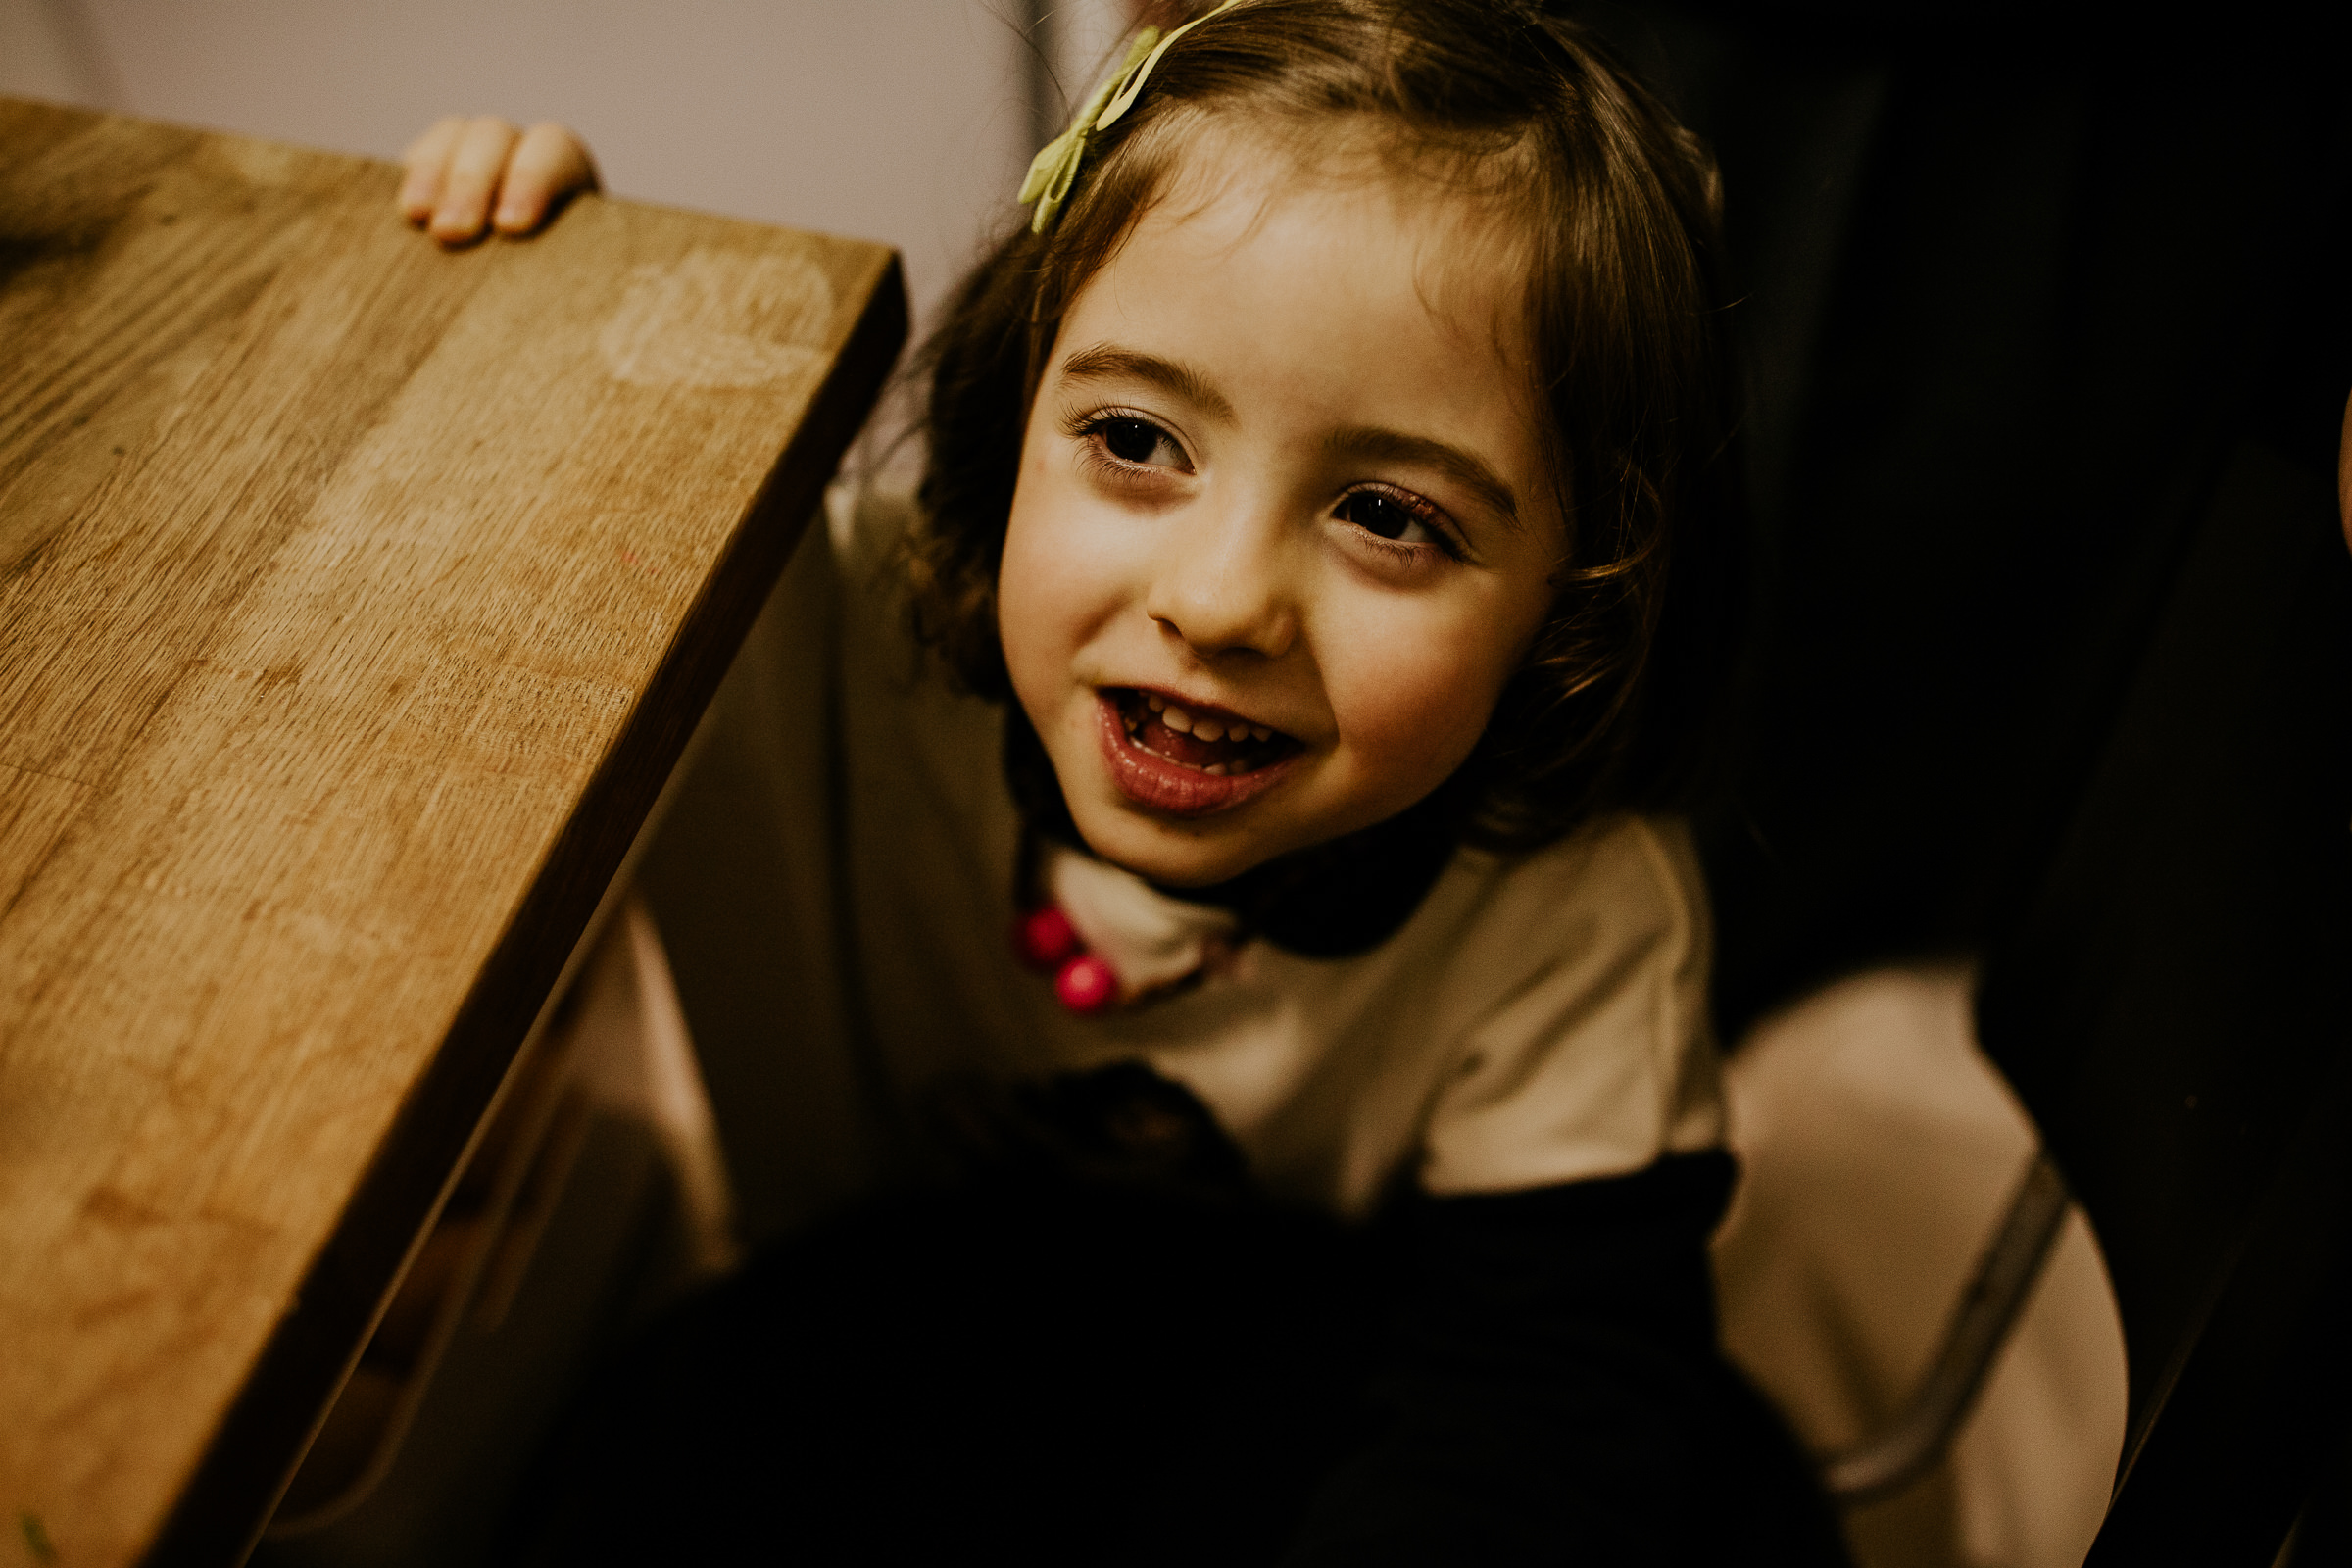 little child smiling next to a table at home